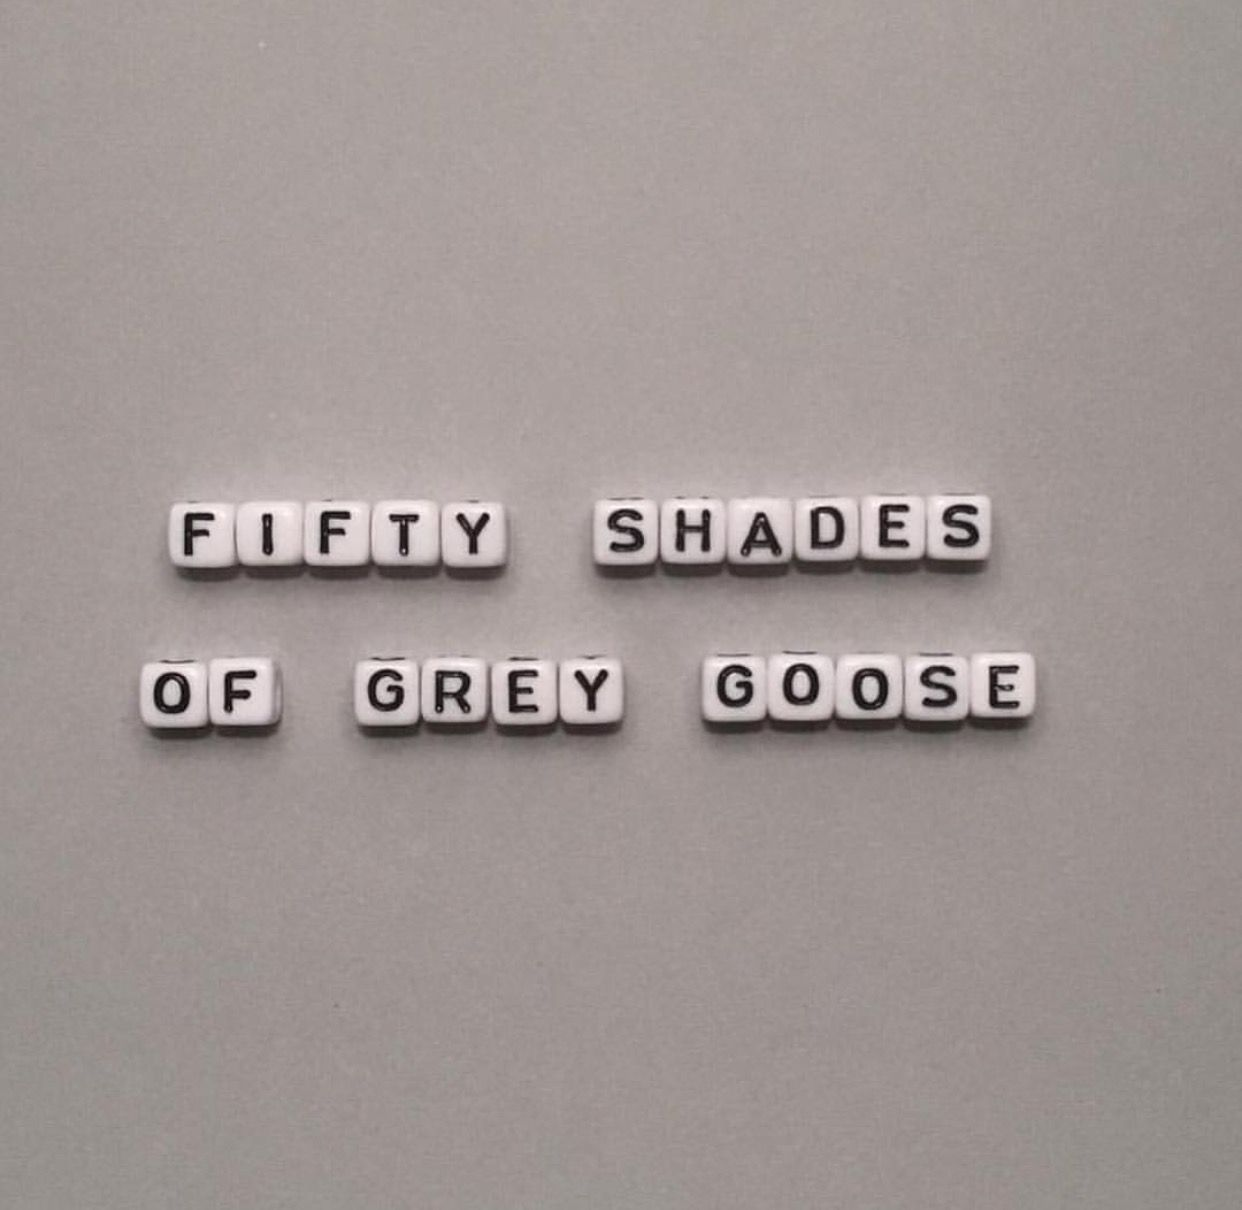 Fifty Shades Single Quotes Funny Drinking Captions Words